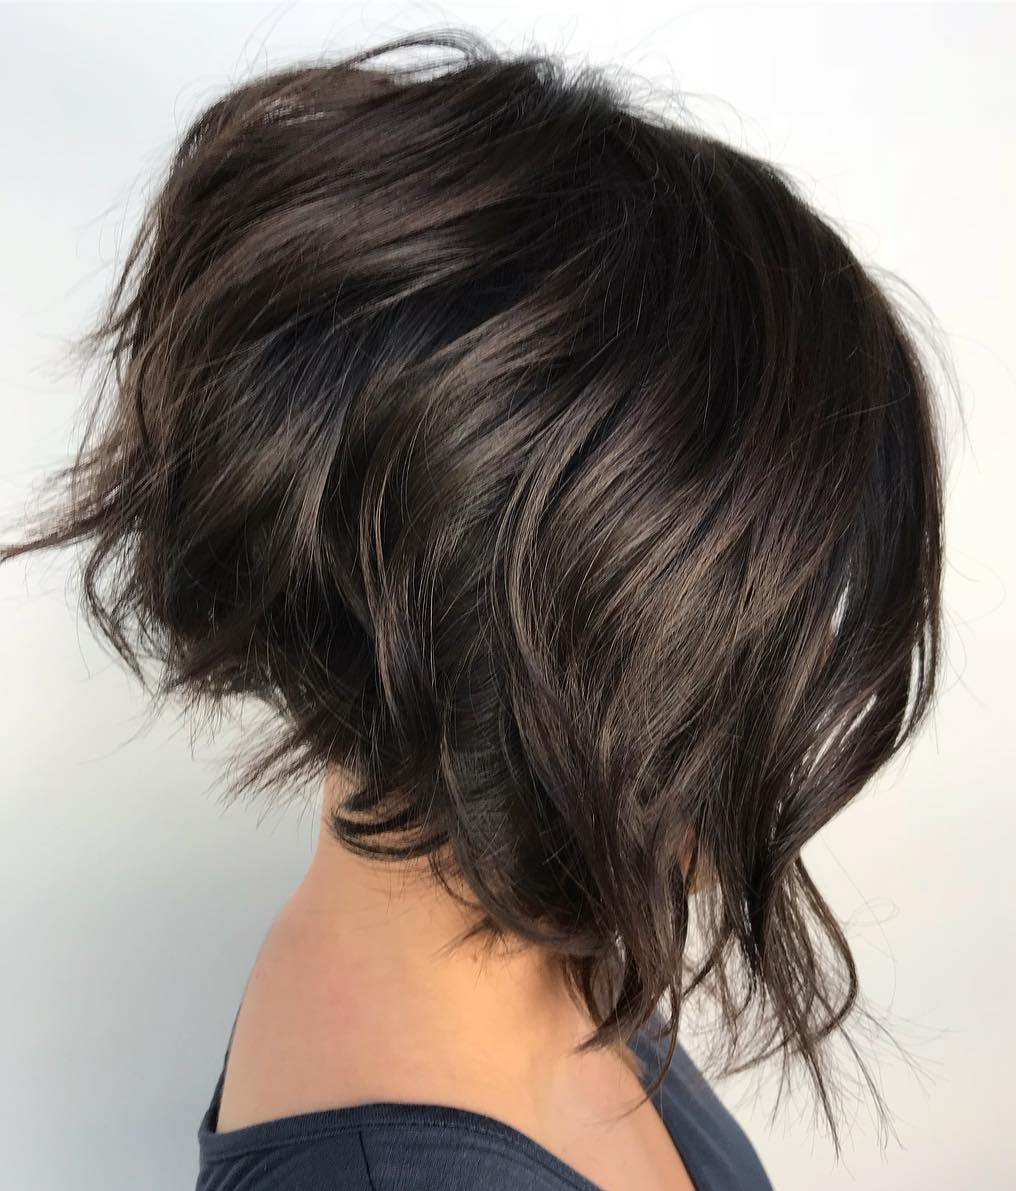 Voluminous Inverted Dark Bob